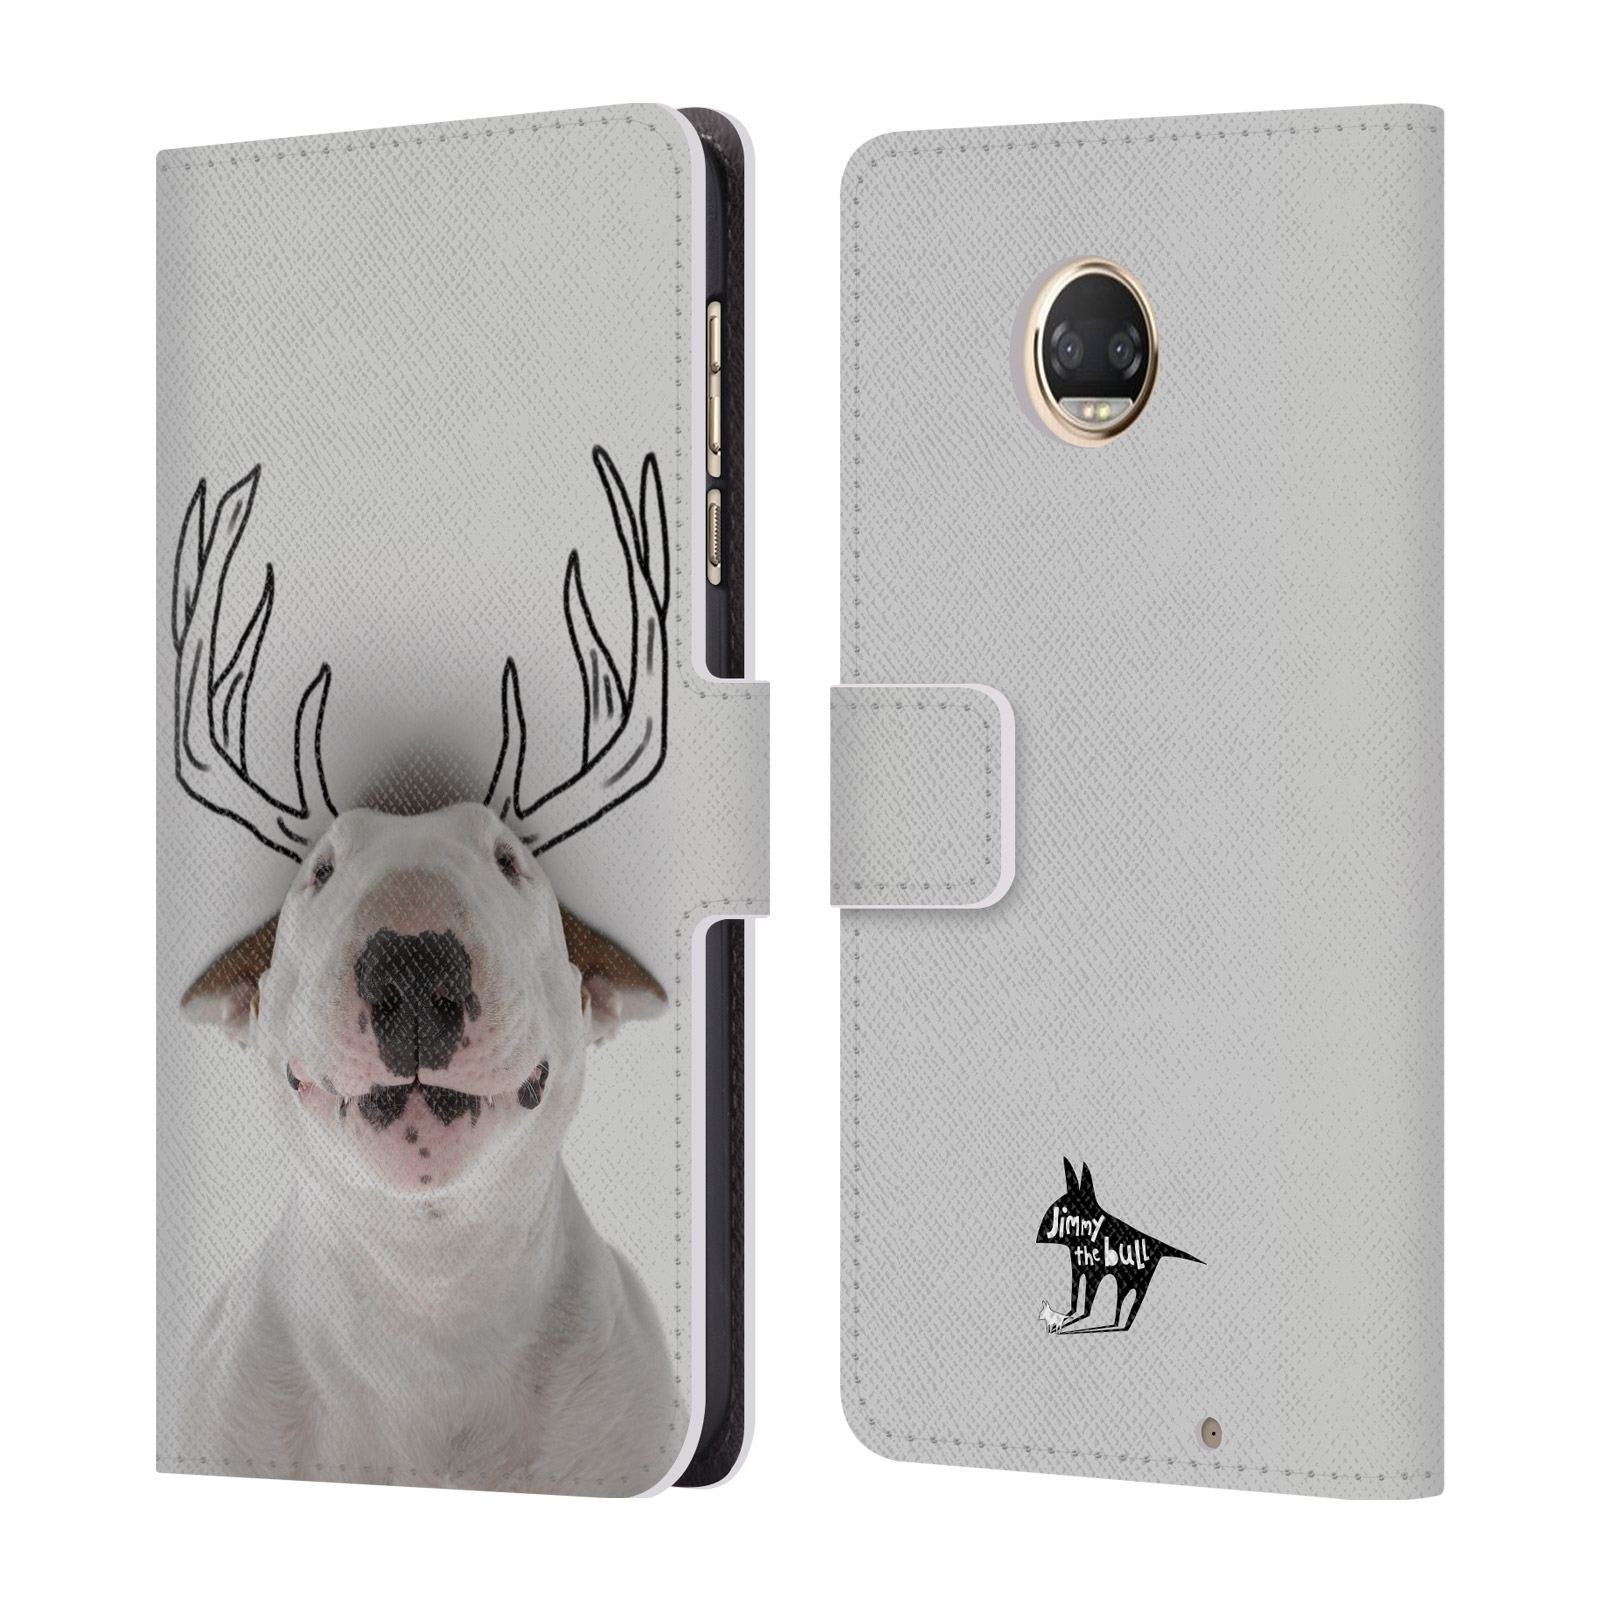 OFFICIAL-JIMMY-THE-BULL-DOODLES-LEATHER-BOOK-WALLET-CASE-FOR-MOTOROLA-PHONES